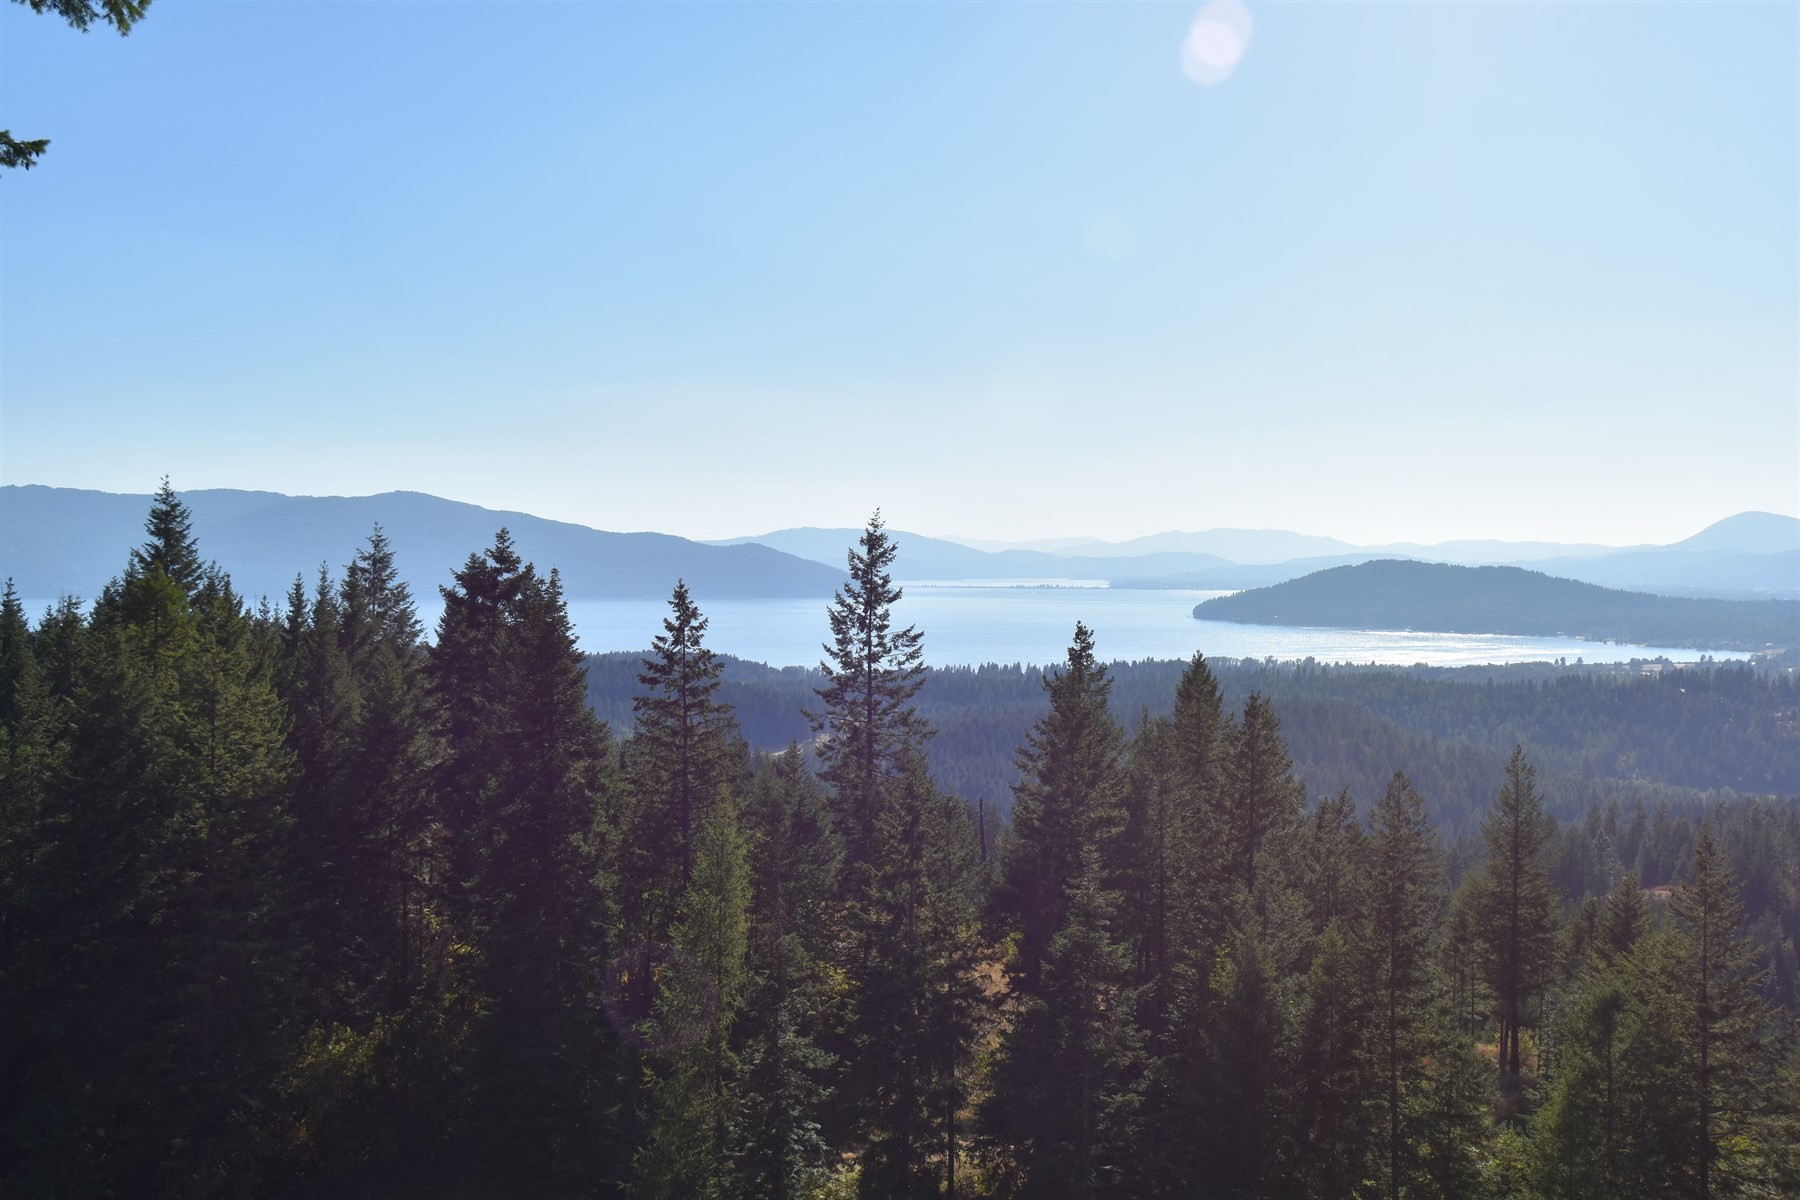 Additional photo for property listing at The Idaho Club Lot E-8 346 North Star Lane Sandpoint, Idaho 83864 United States